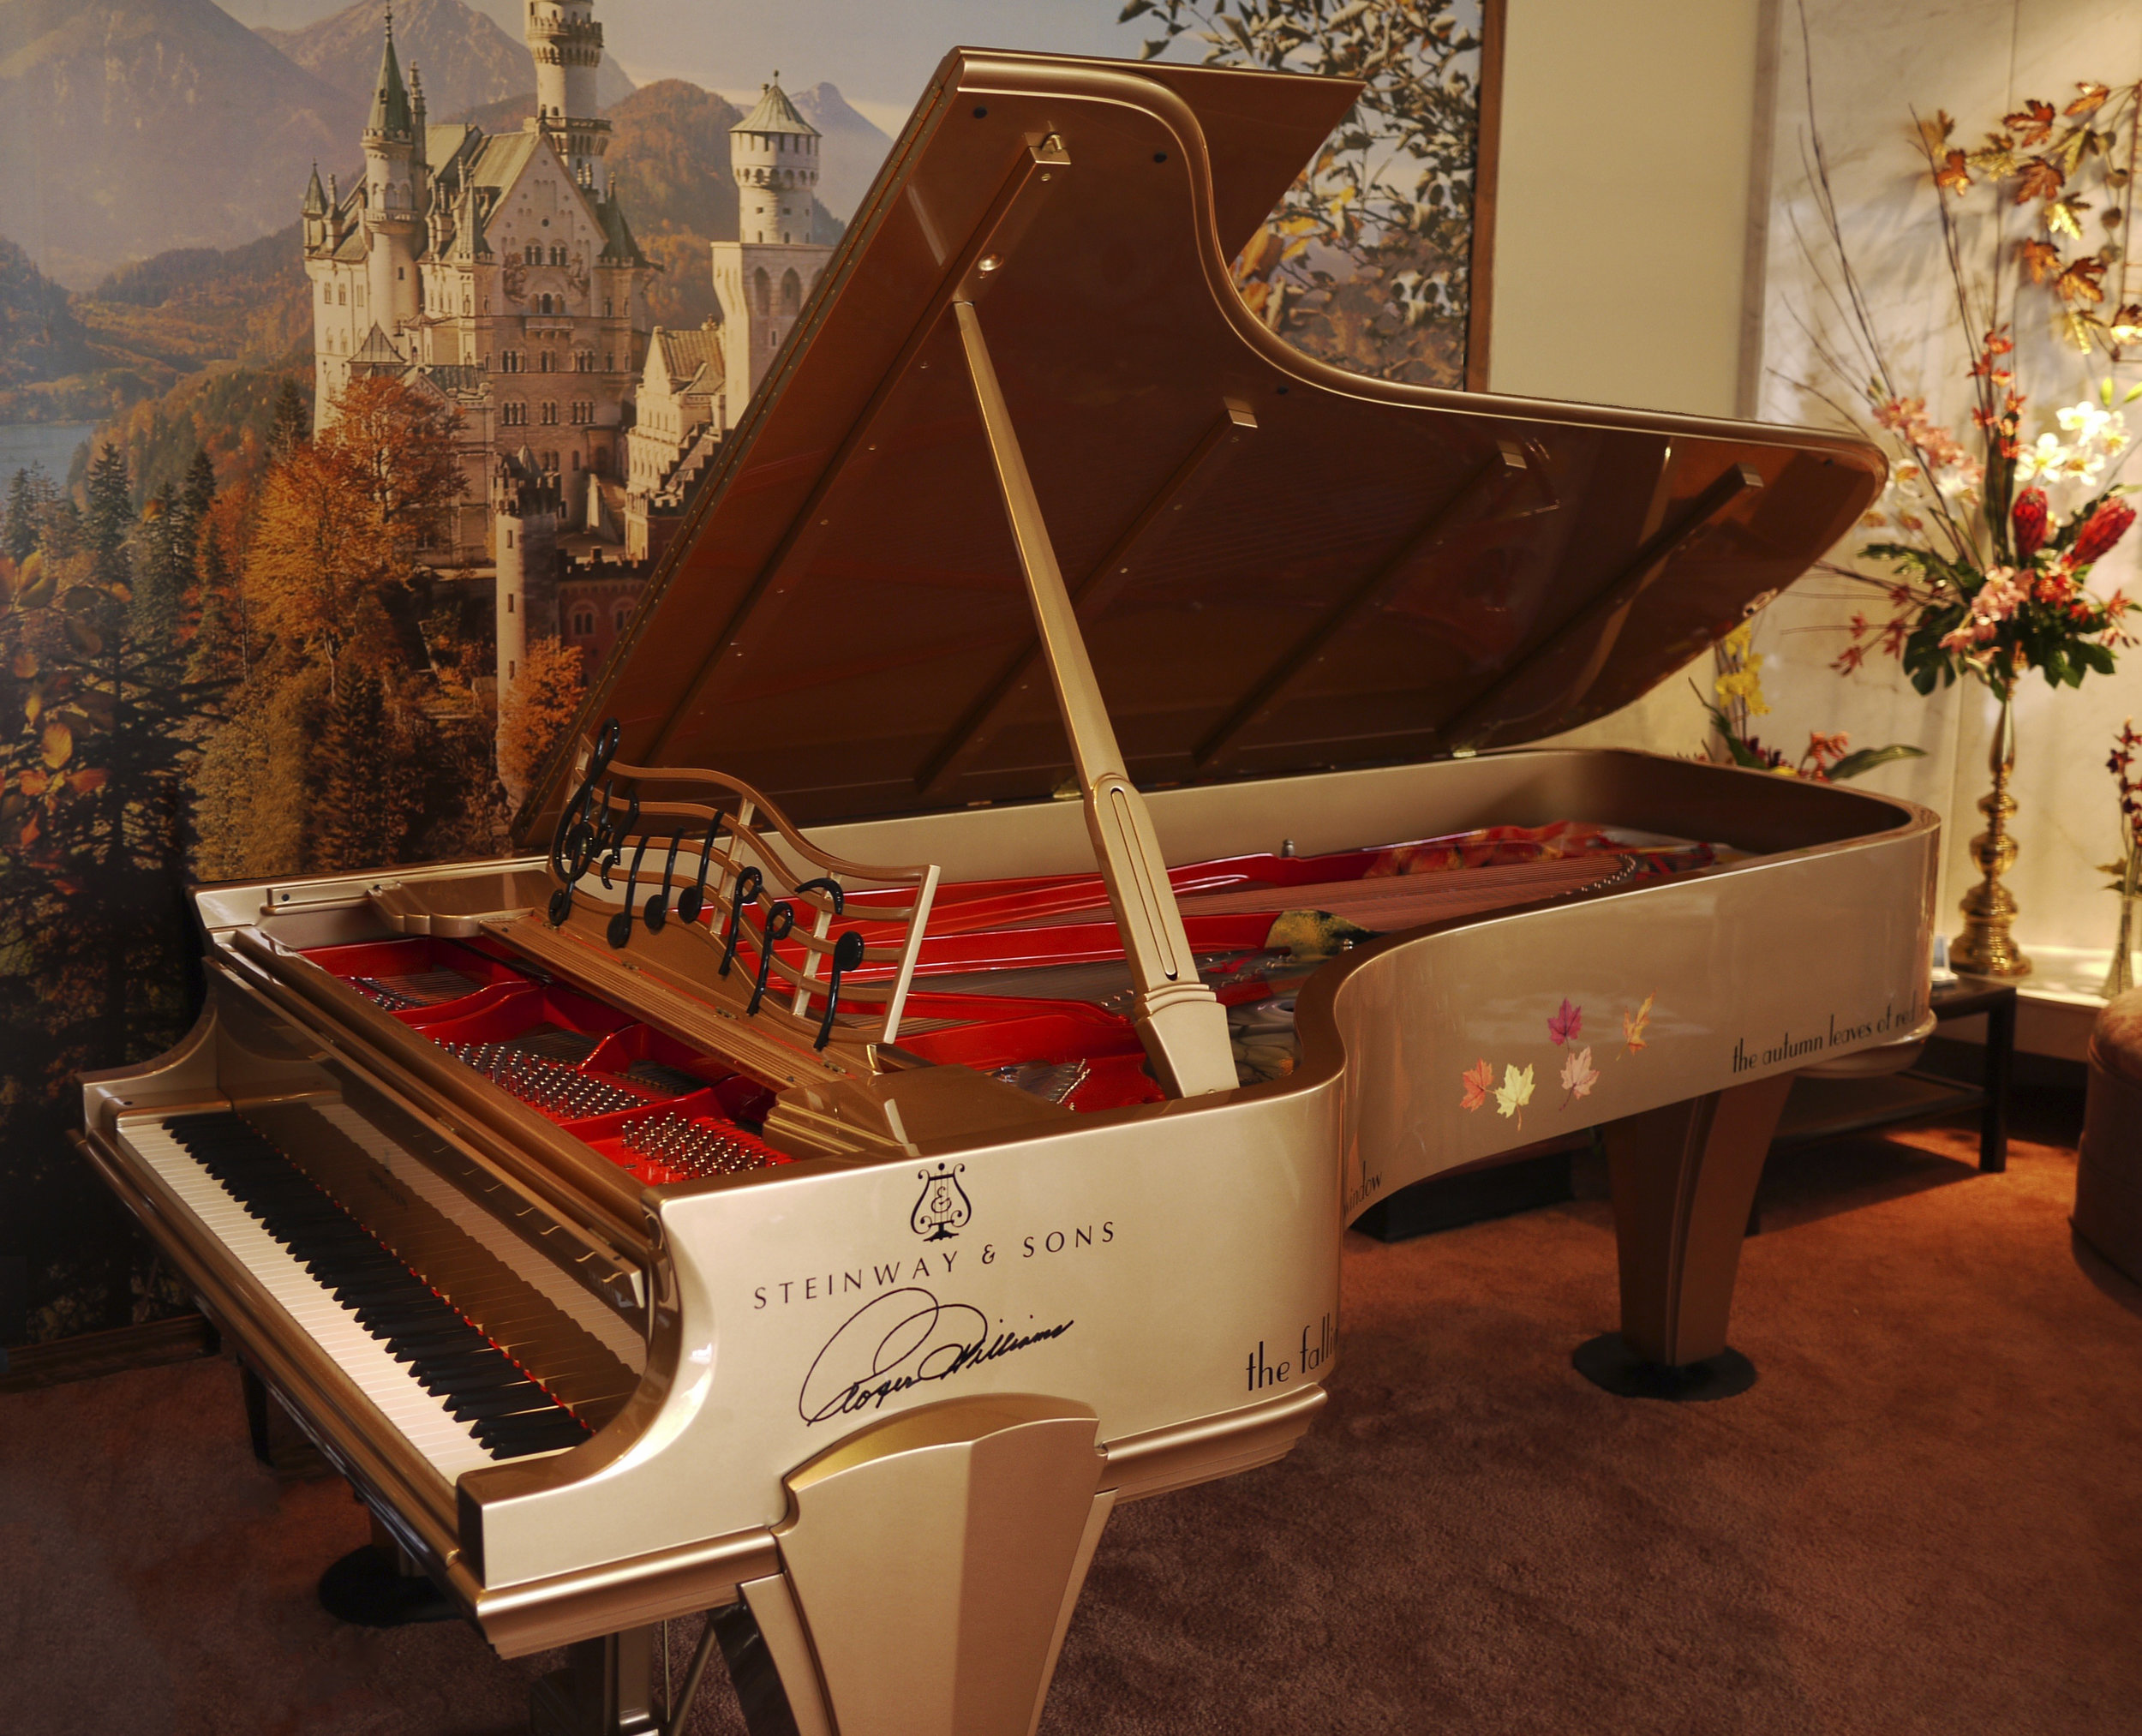 Roger Williams Limited Edition Gold Piano - Steinway & Sons